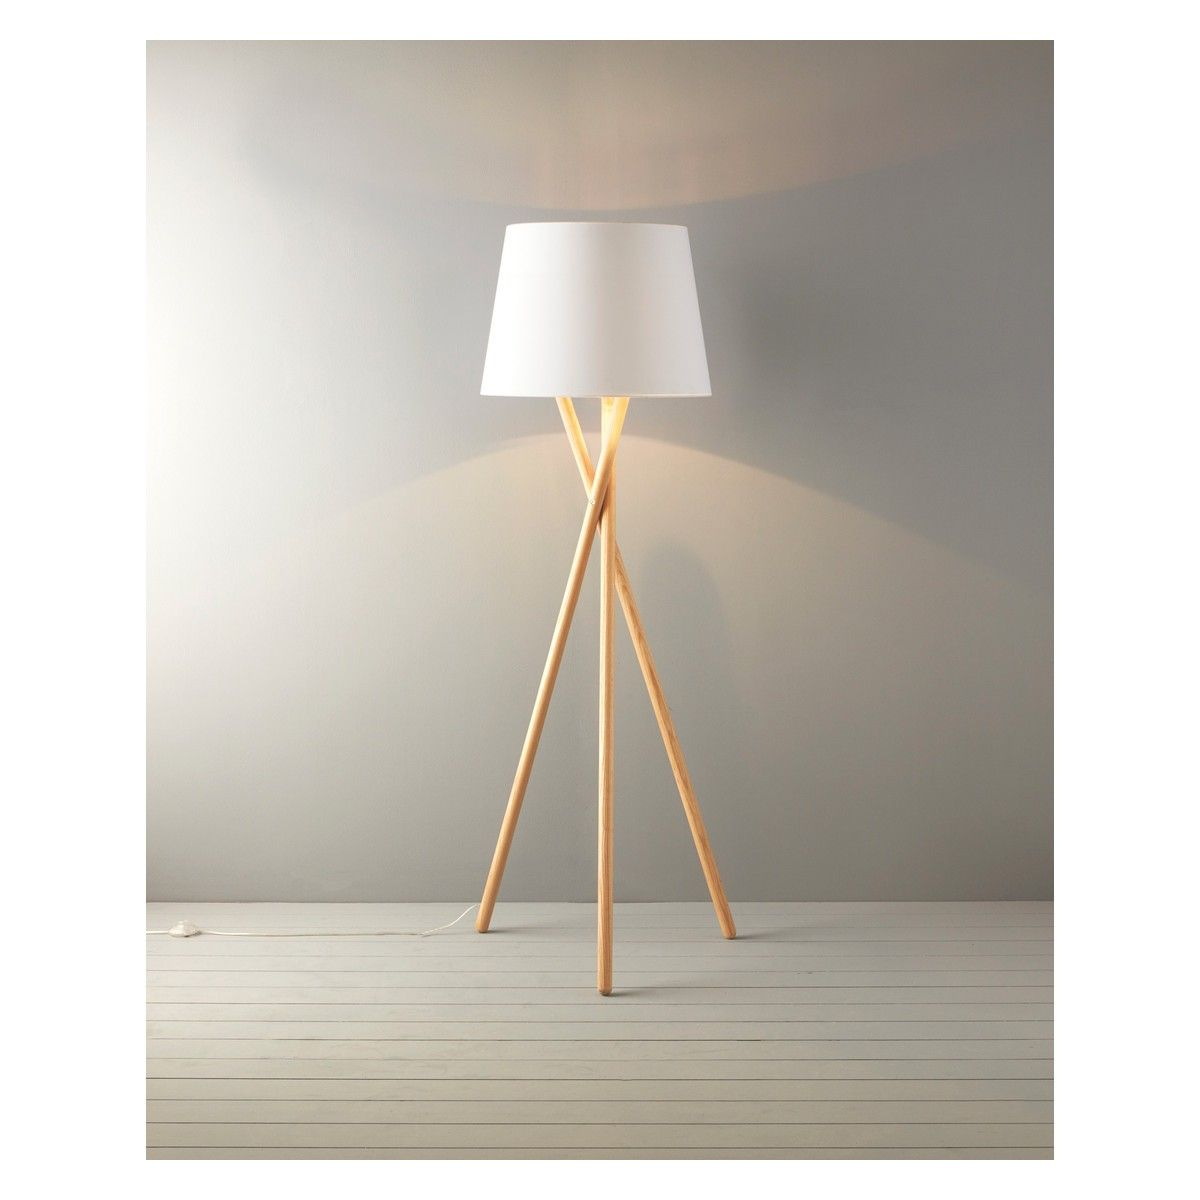 Pin By Volskaya Tatyana Anatolevna On Mebel Wooden Tripod Floor Lamp Floor Lamp Base Floor Lamp